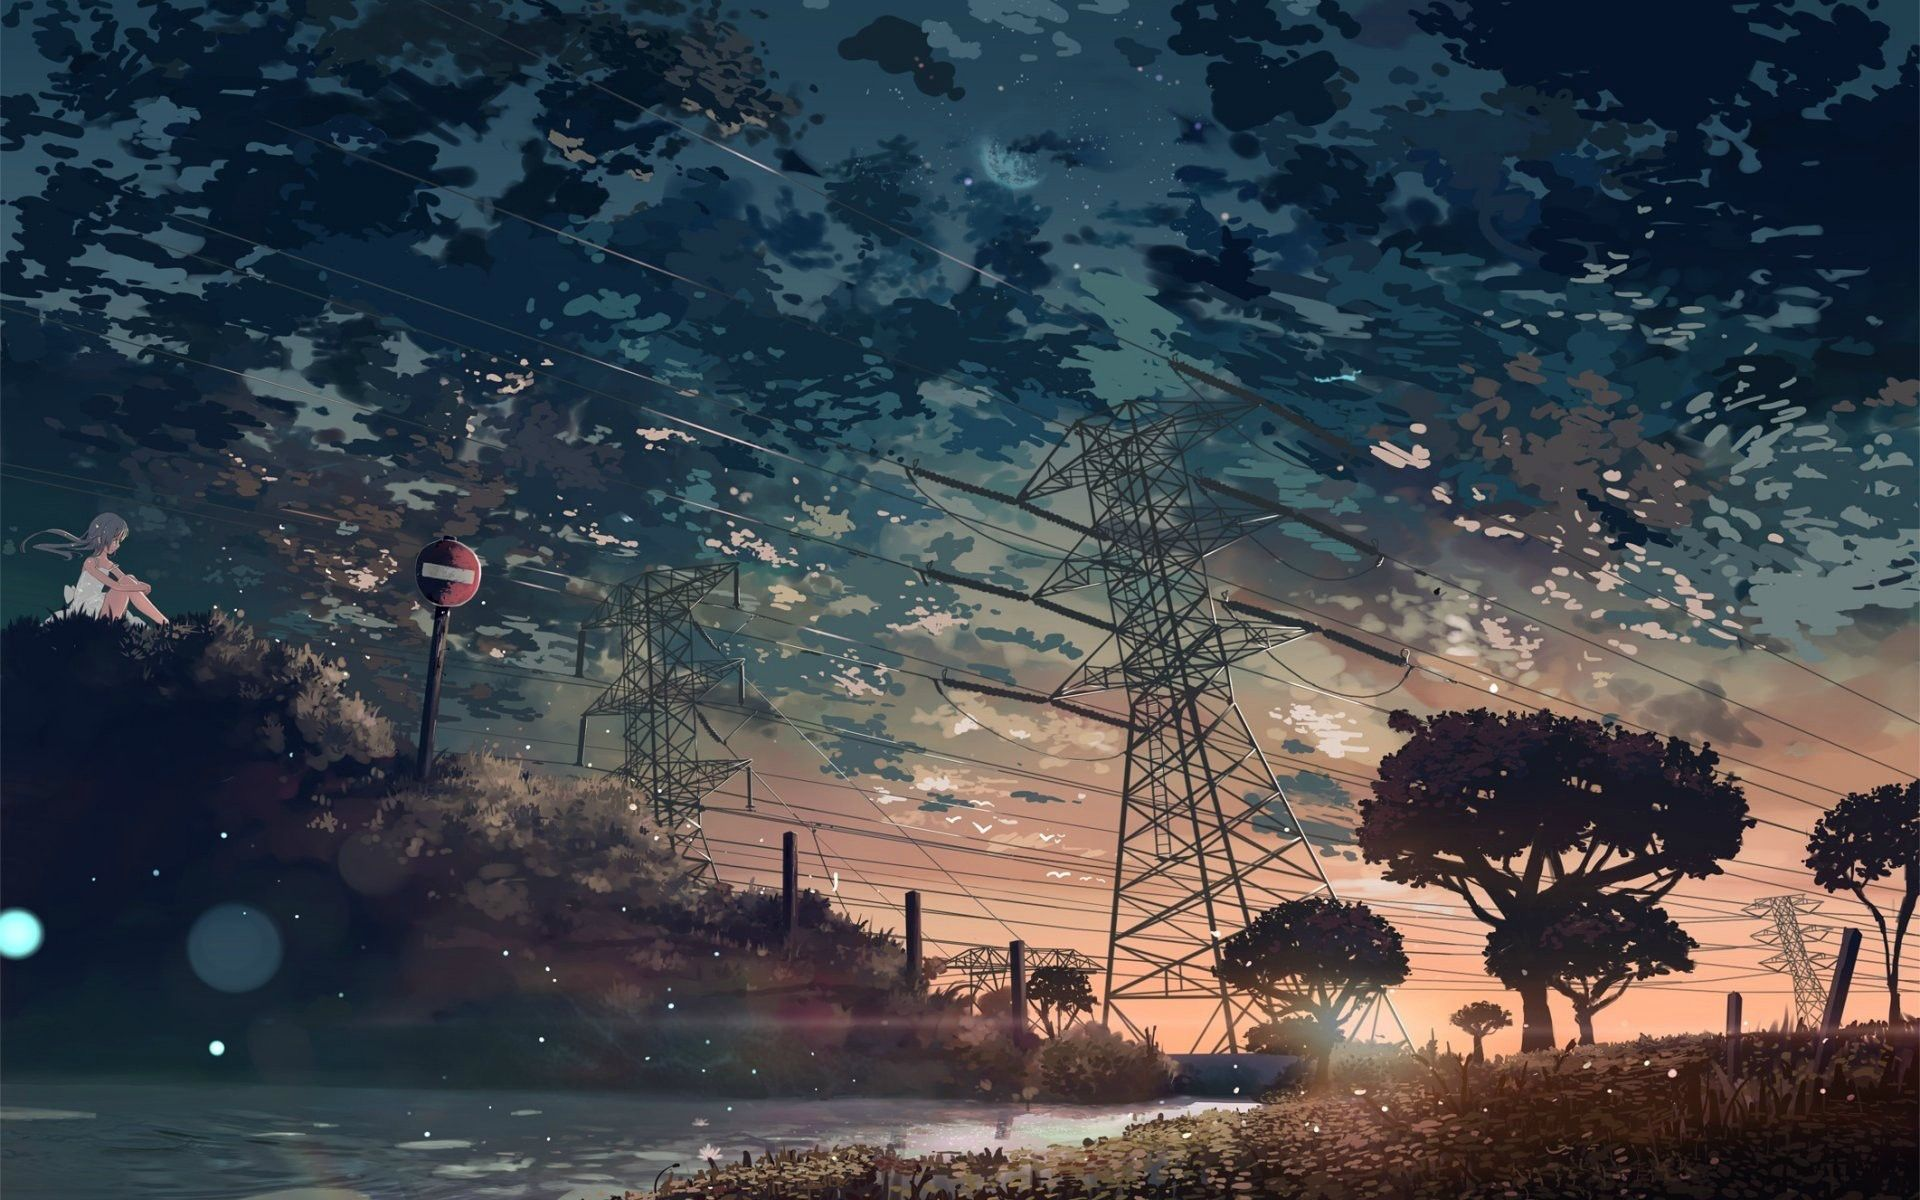 1920x1200 Awesome Aesthetic Anime Desktop Wallpaper Gallery Anime Wallpaper Hd Anime Scenery Scenery Wallpaper Landscape Wallpaper